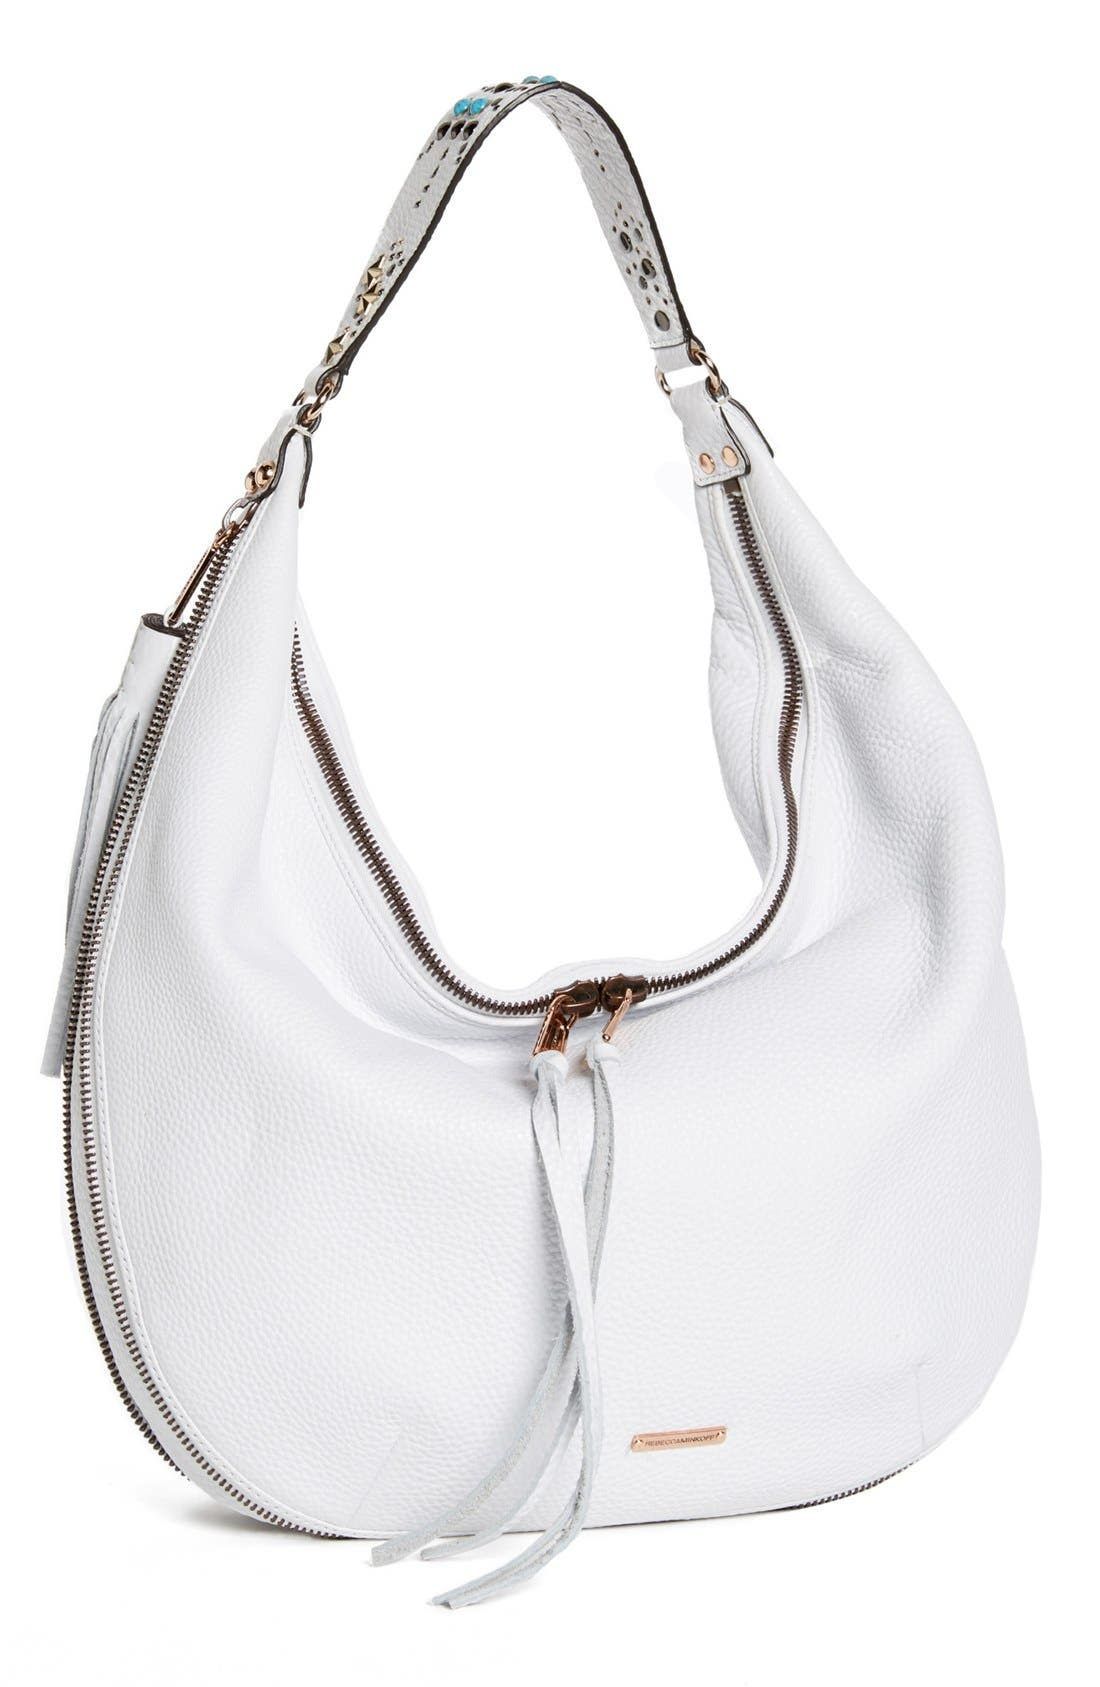 Alternate Image 1 Selected - Rebecca Minkoff 'Bailey' Hobo